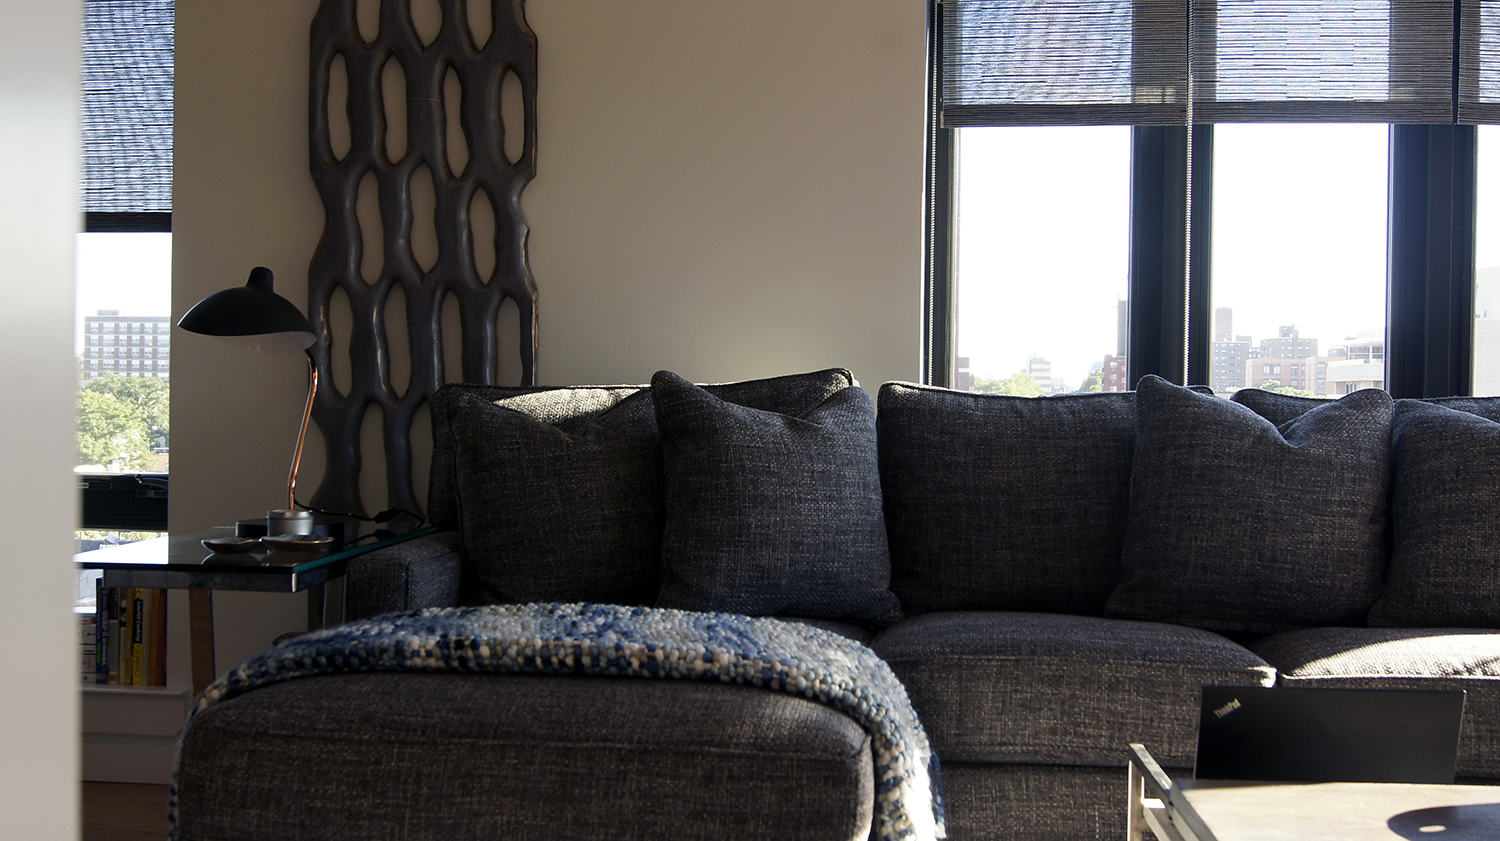 condo designer queens ny long island city 11101.JPG